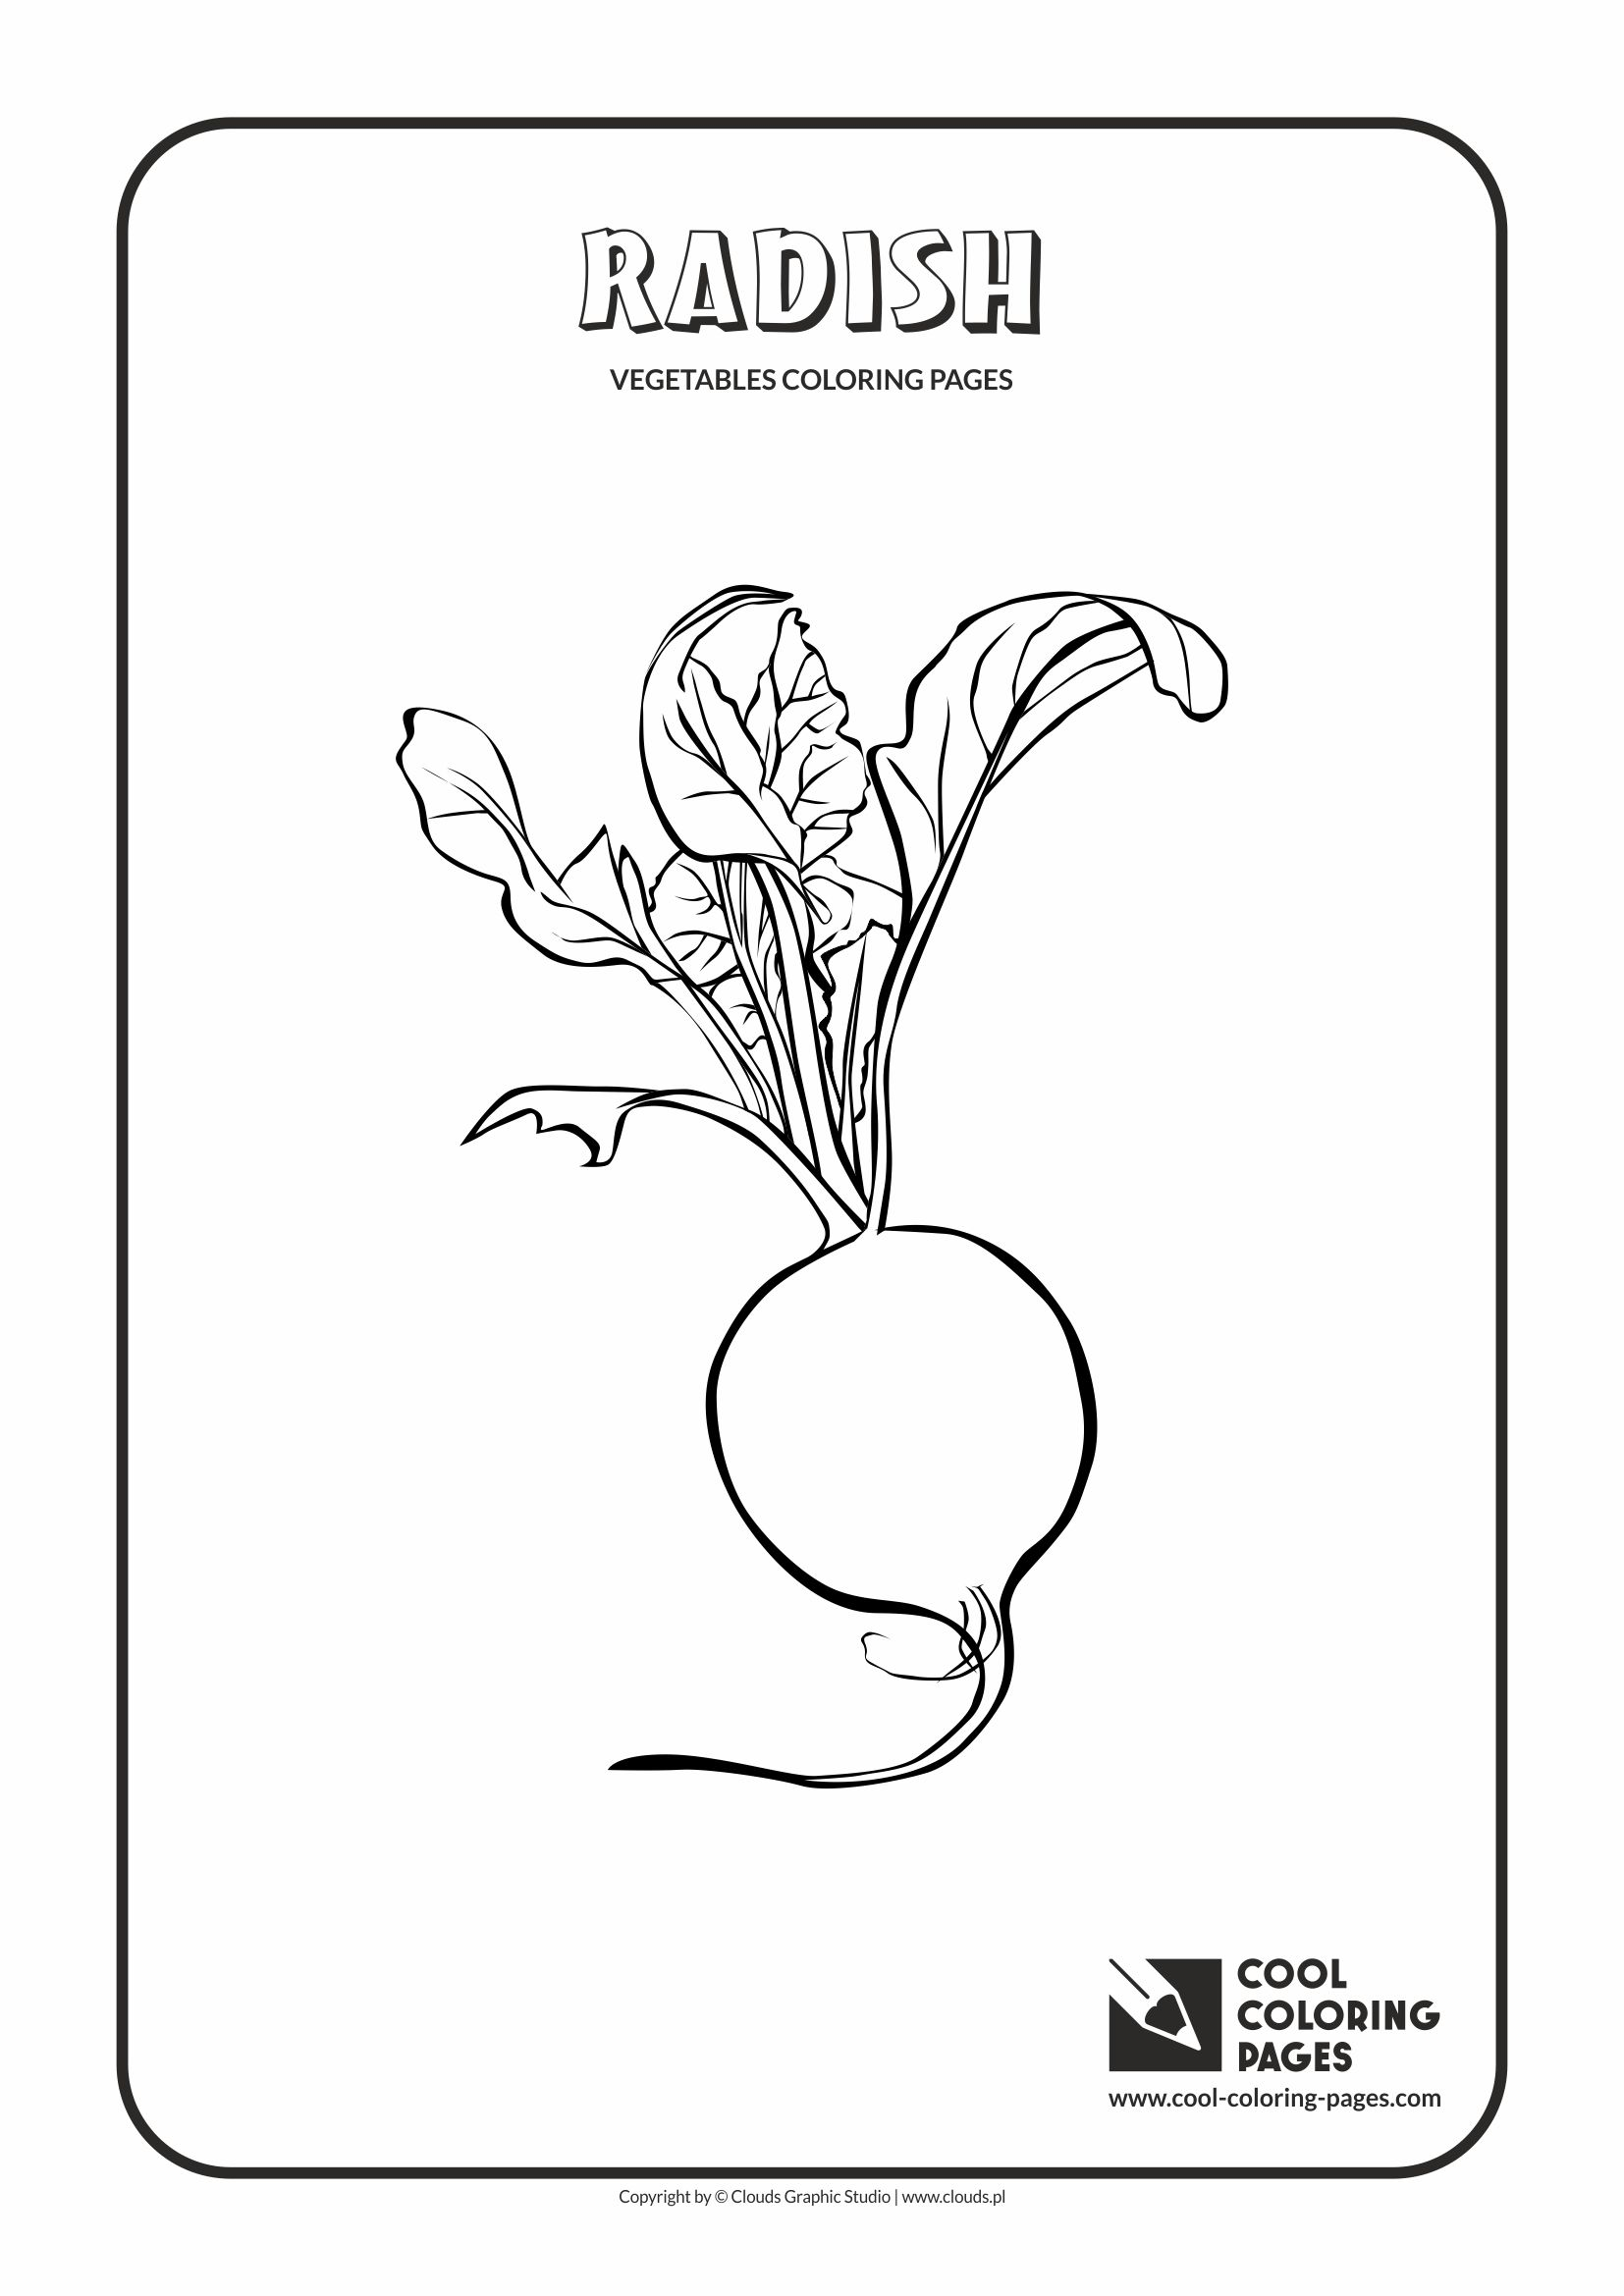 Cool Coloring Pages - Plants / Radish / Coloring page with radish